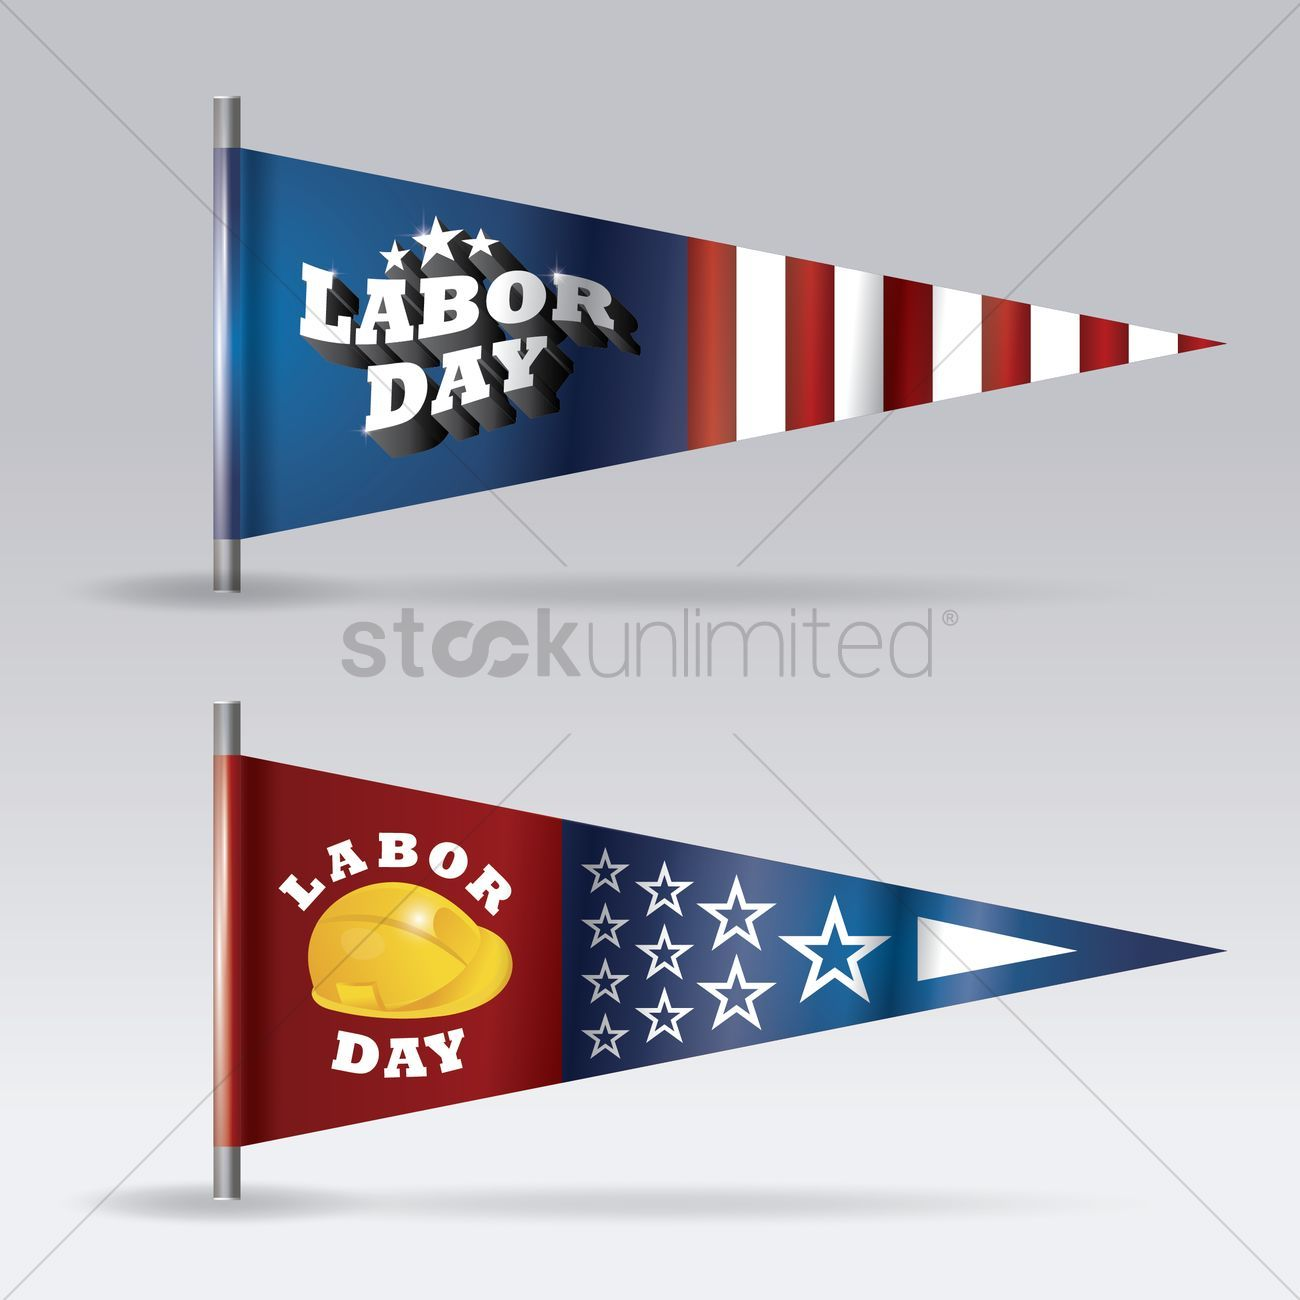 Labor day pennant vector illustration , #SPONSORED, #day, #Labor, #pennant, #illustration, #vector #affiliate